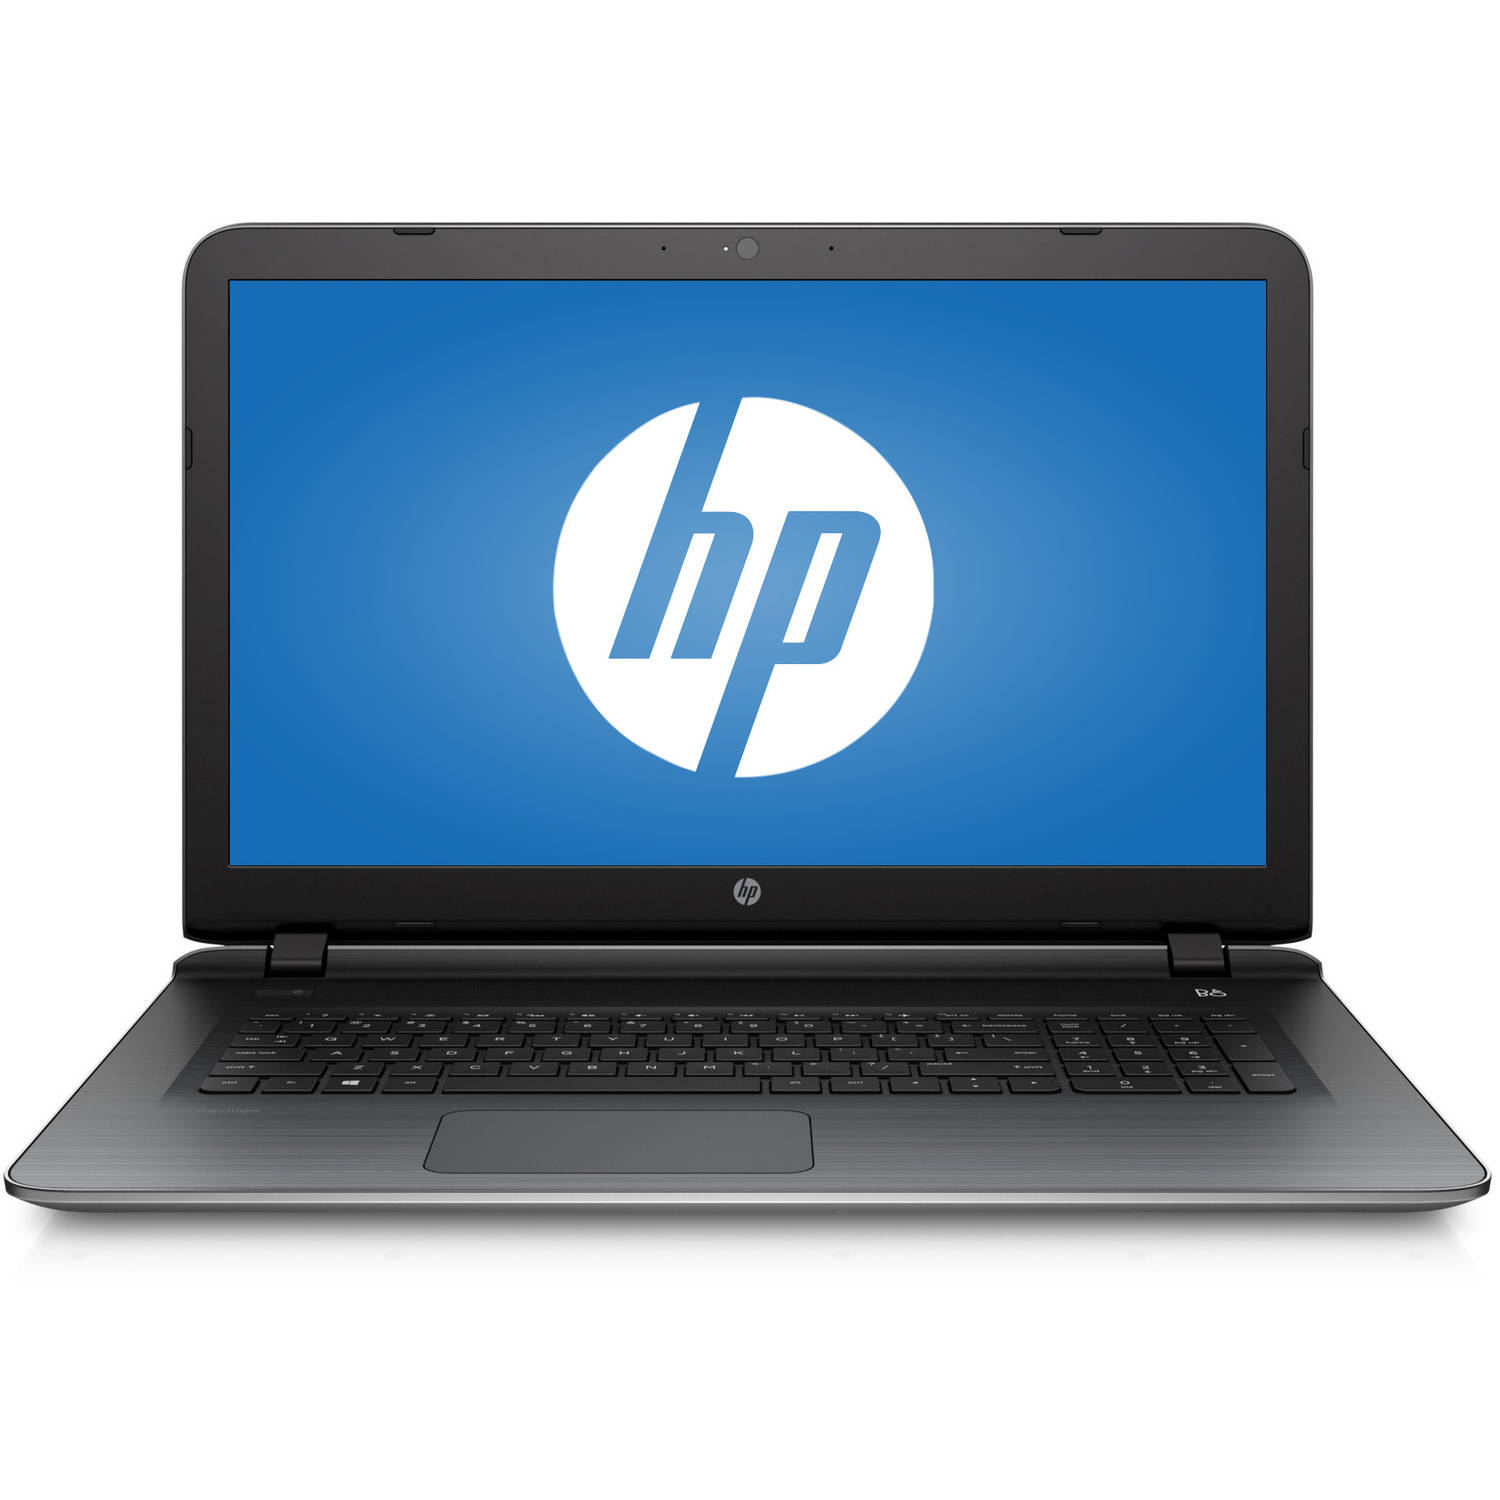 "Factory Refurbished HP Pavilion 17-g113dx 17.3"" Laptop, Windows 10 Home, Intel Core i3-5020U Processor, 6GB RAM, 1TB Hard Drive"